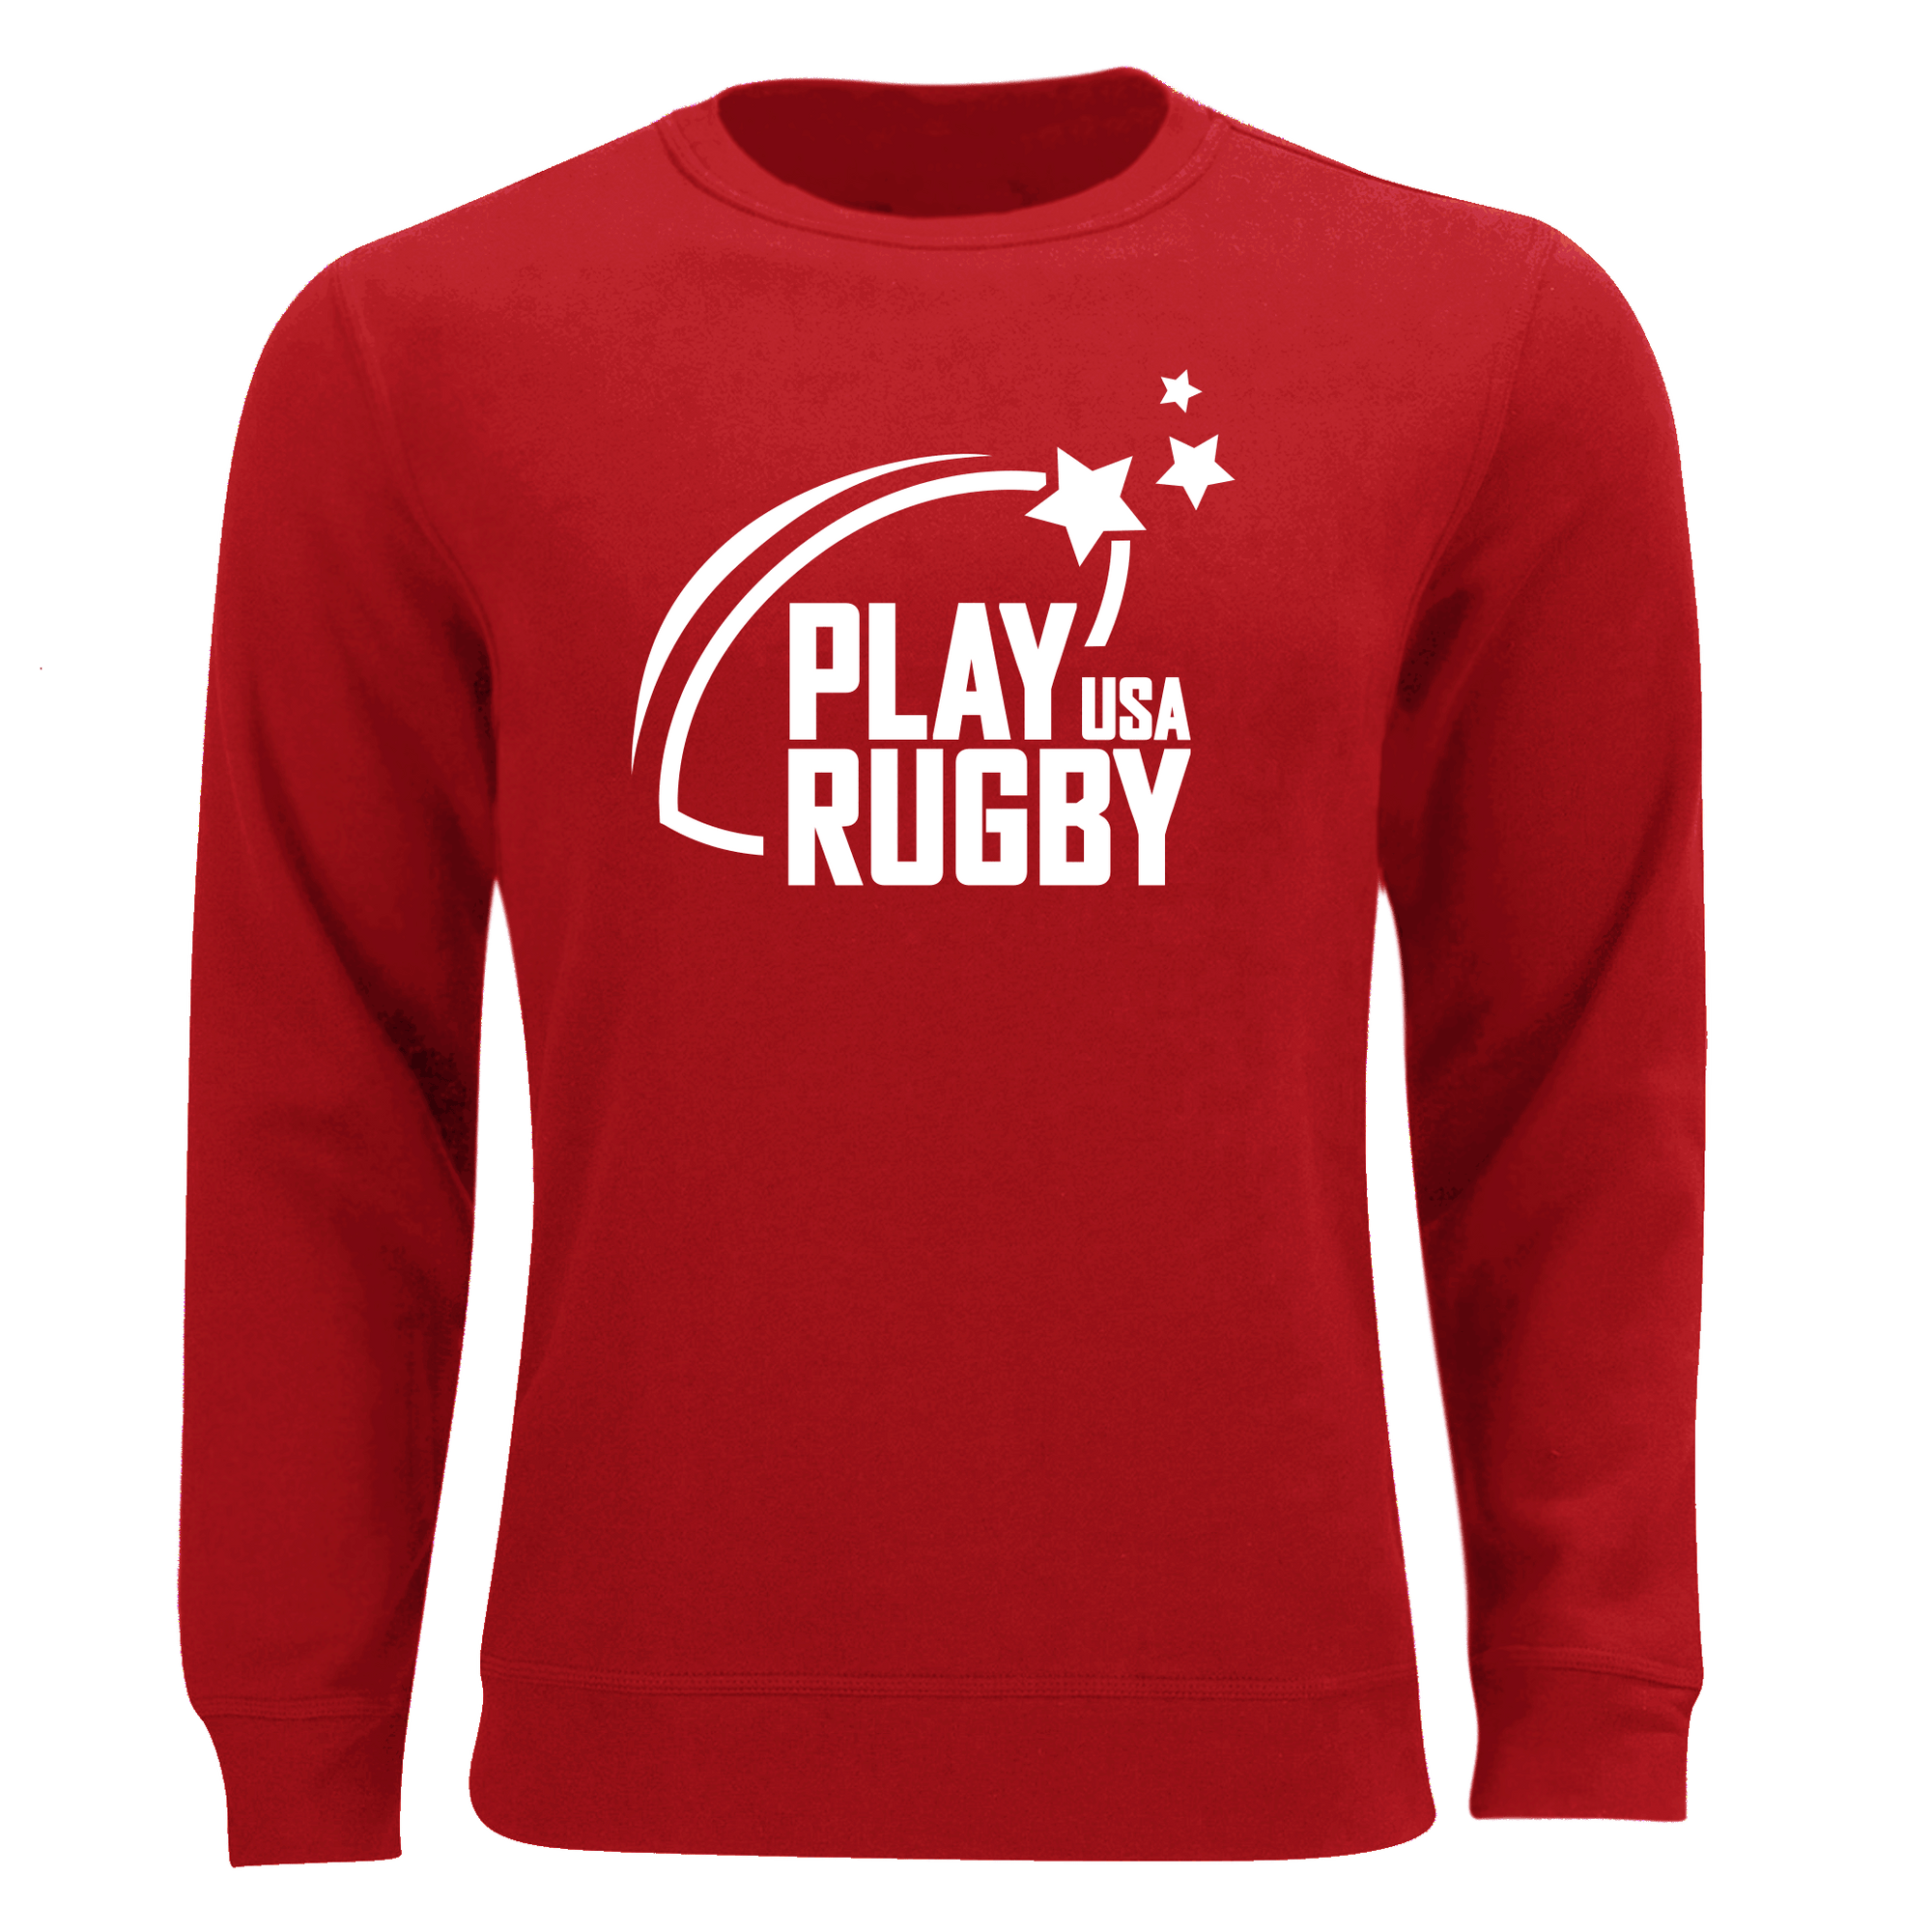 Play Rugby USA Sweatshirt Red